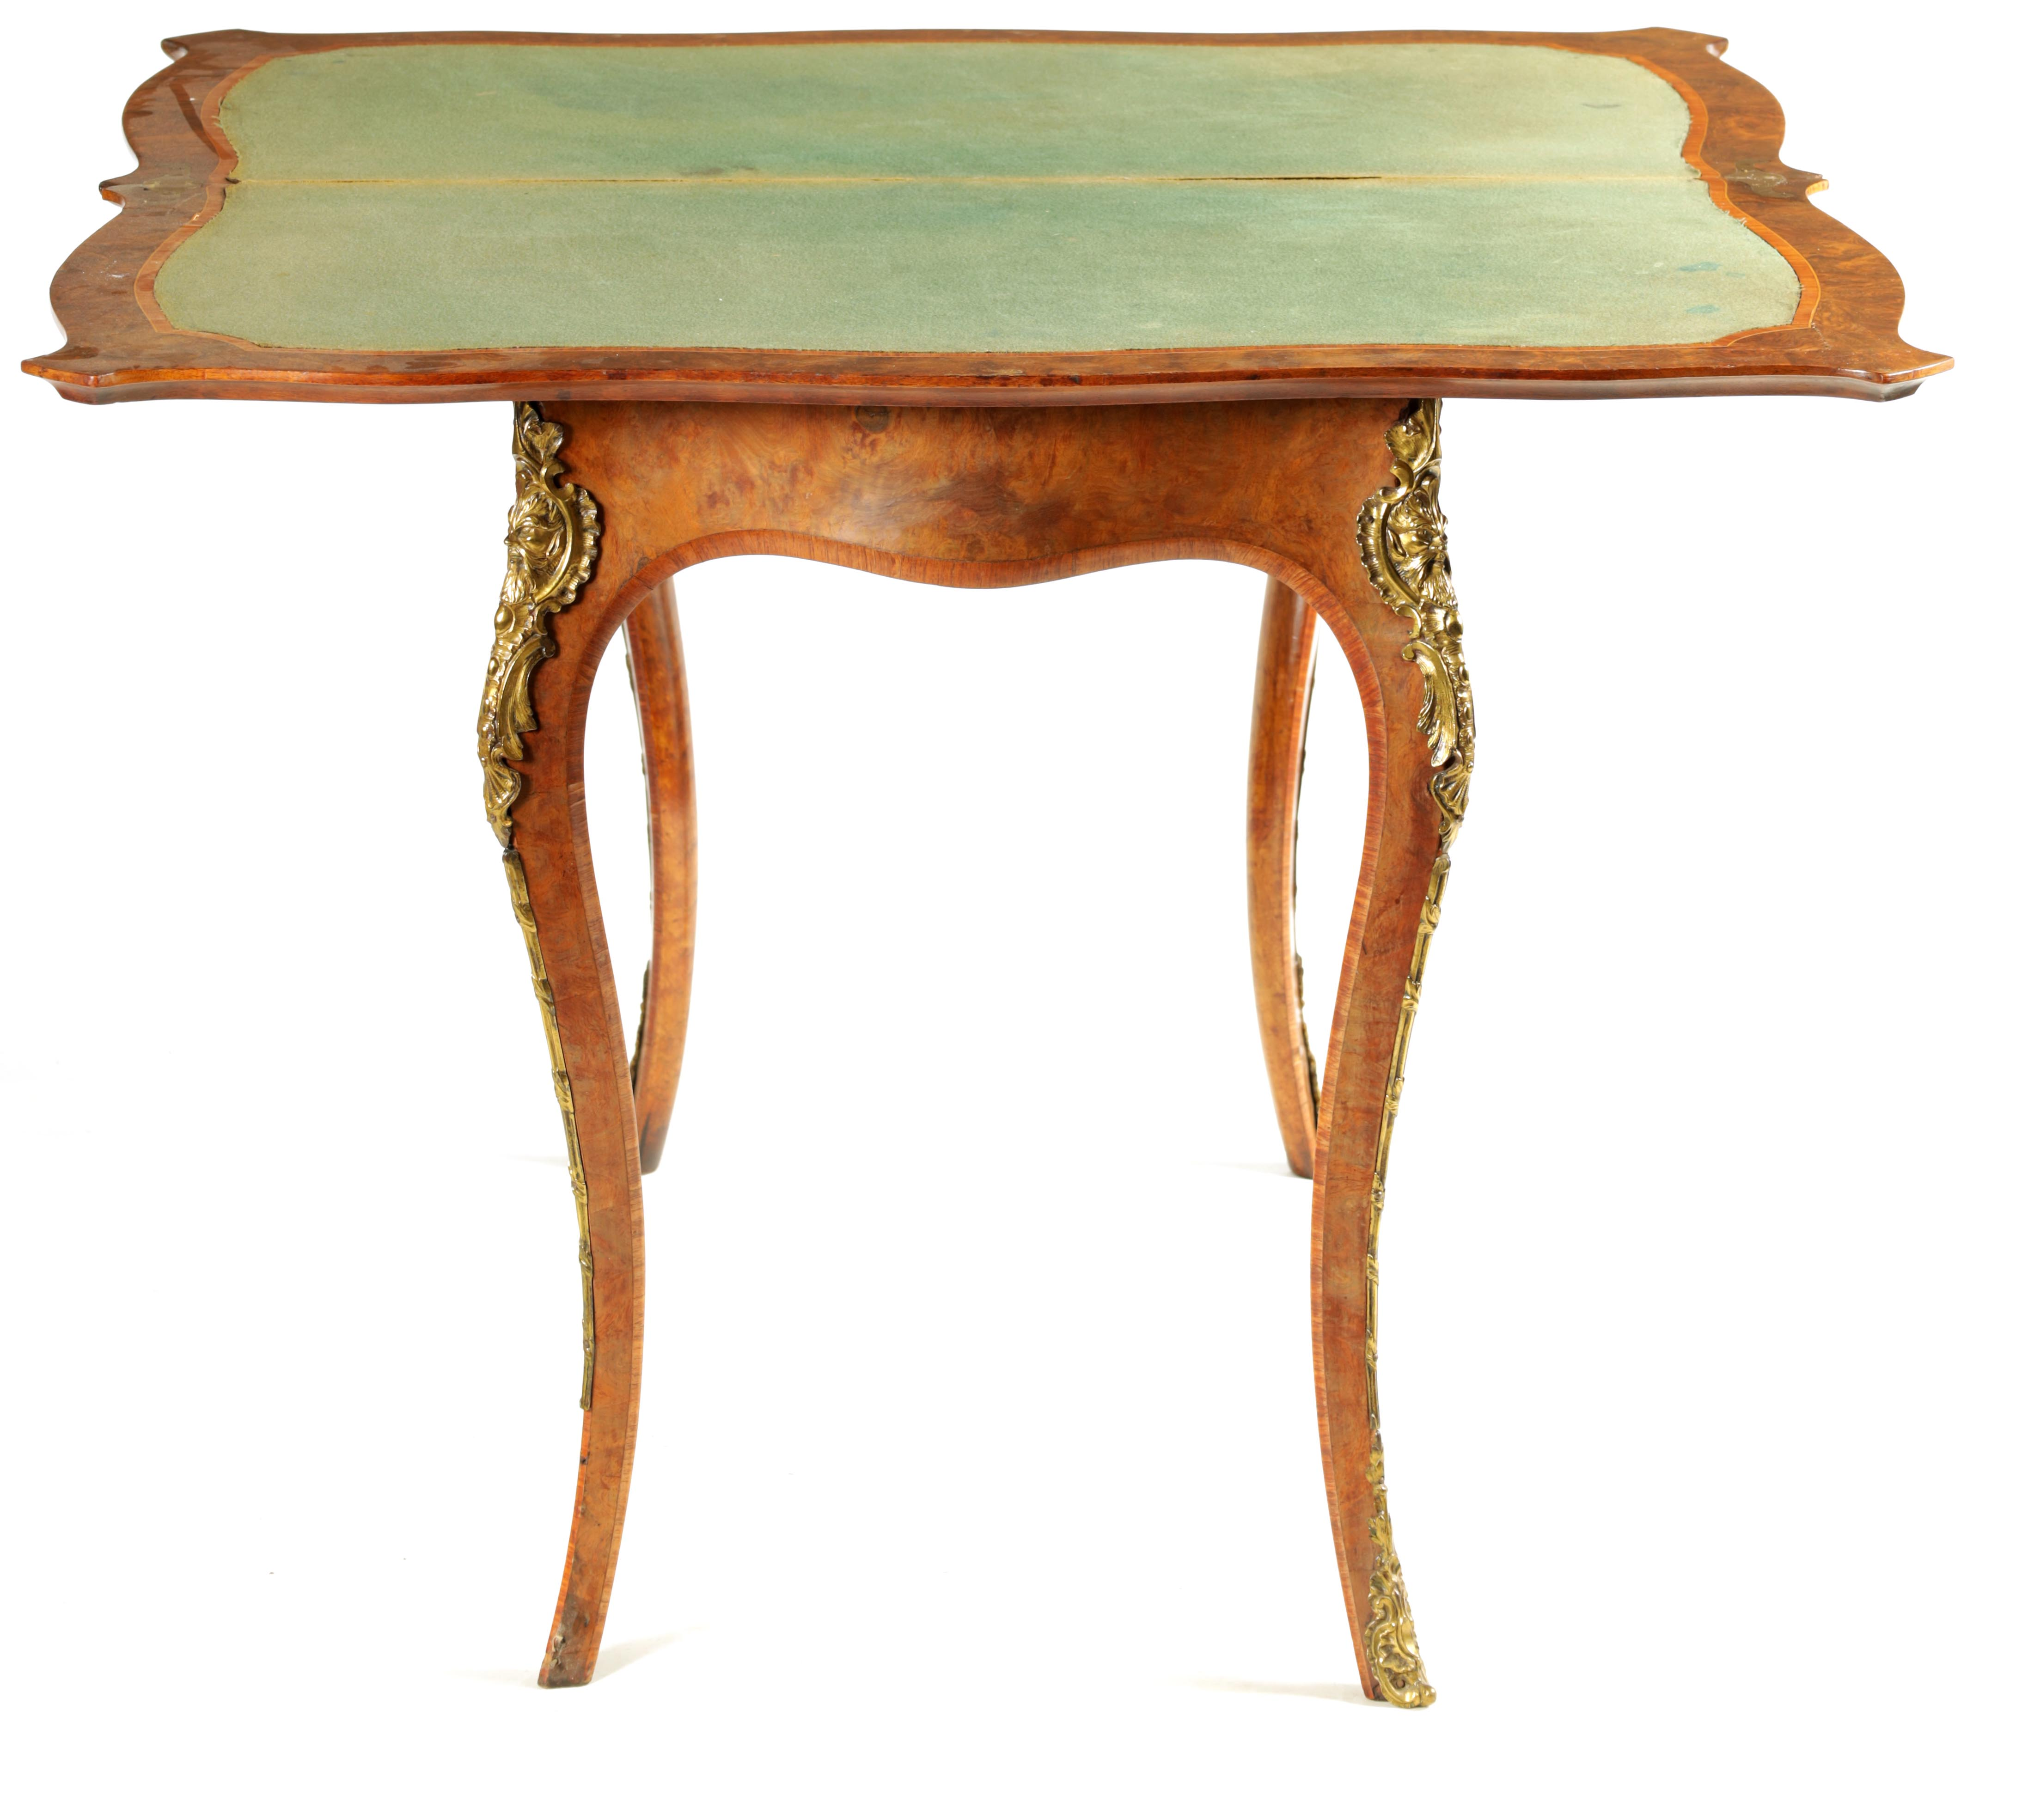 A 19TH CENTURY FRENCH KINGWOOD CROSS-BANDED BURR WALNUT SERPENTINE CARD TABLE with ormolu mounts and - Image 6 of 13